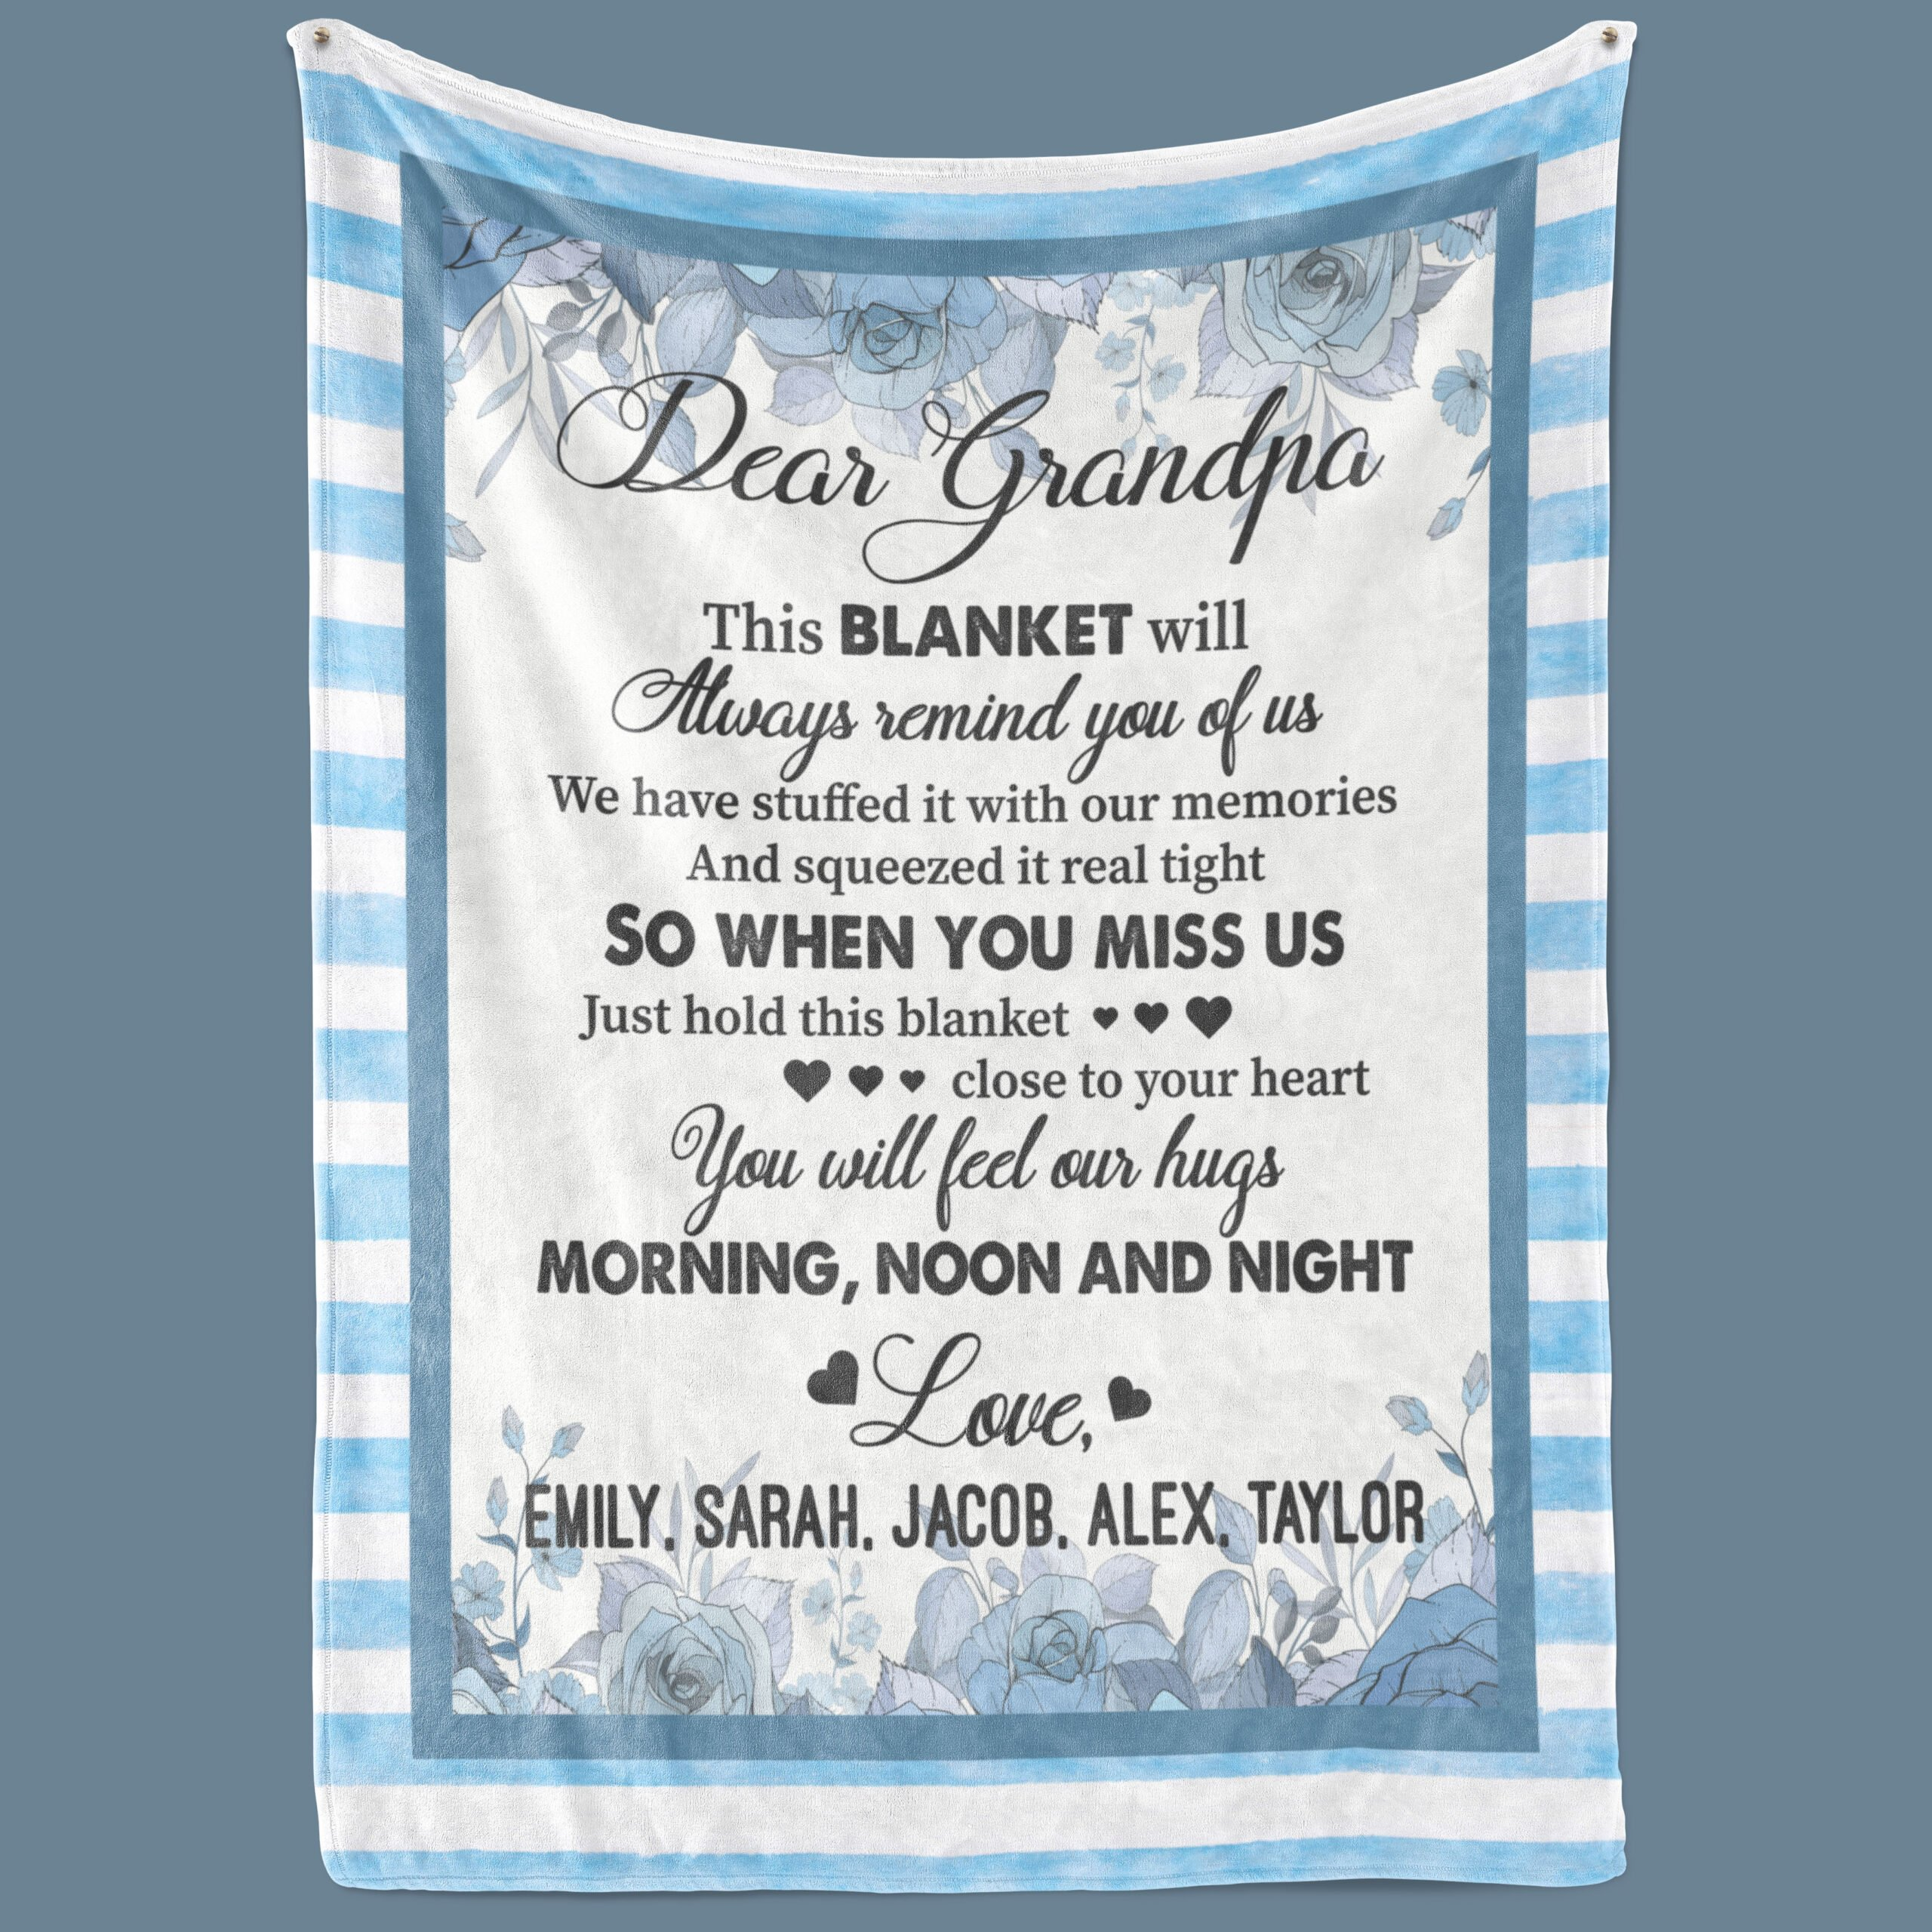 Customized Fleece Blanket for Grandpa We Have Stuffed It With Our Memories